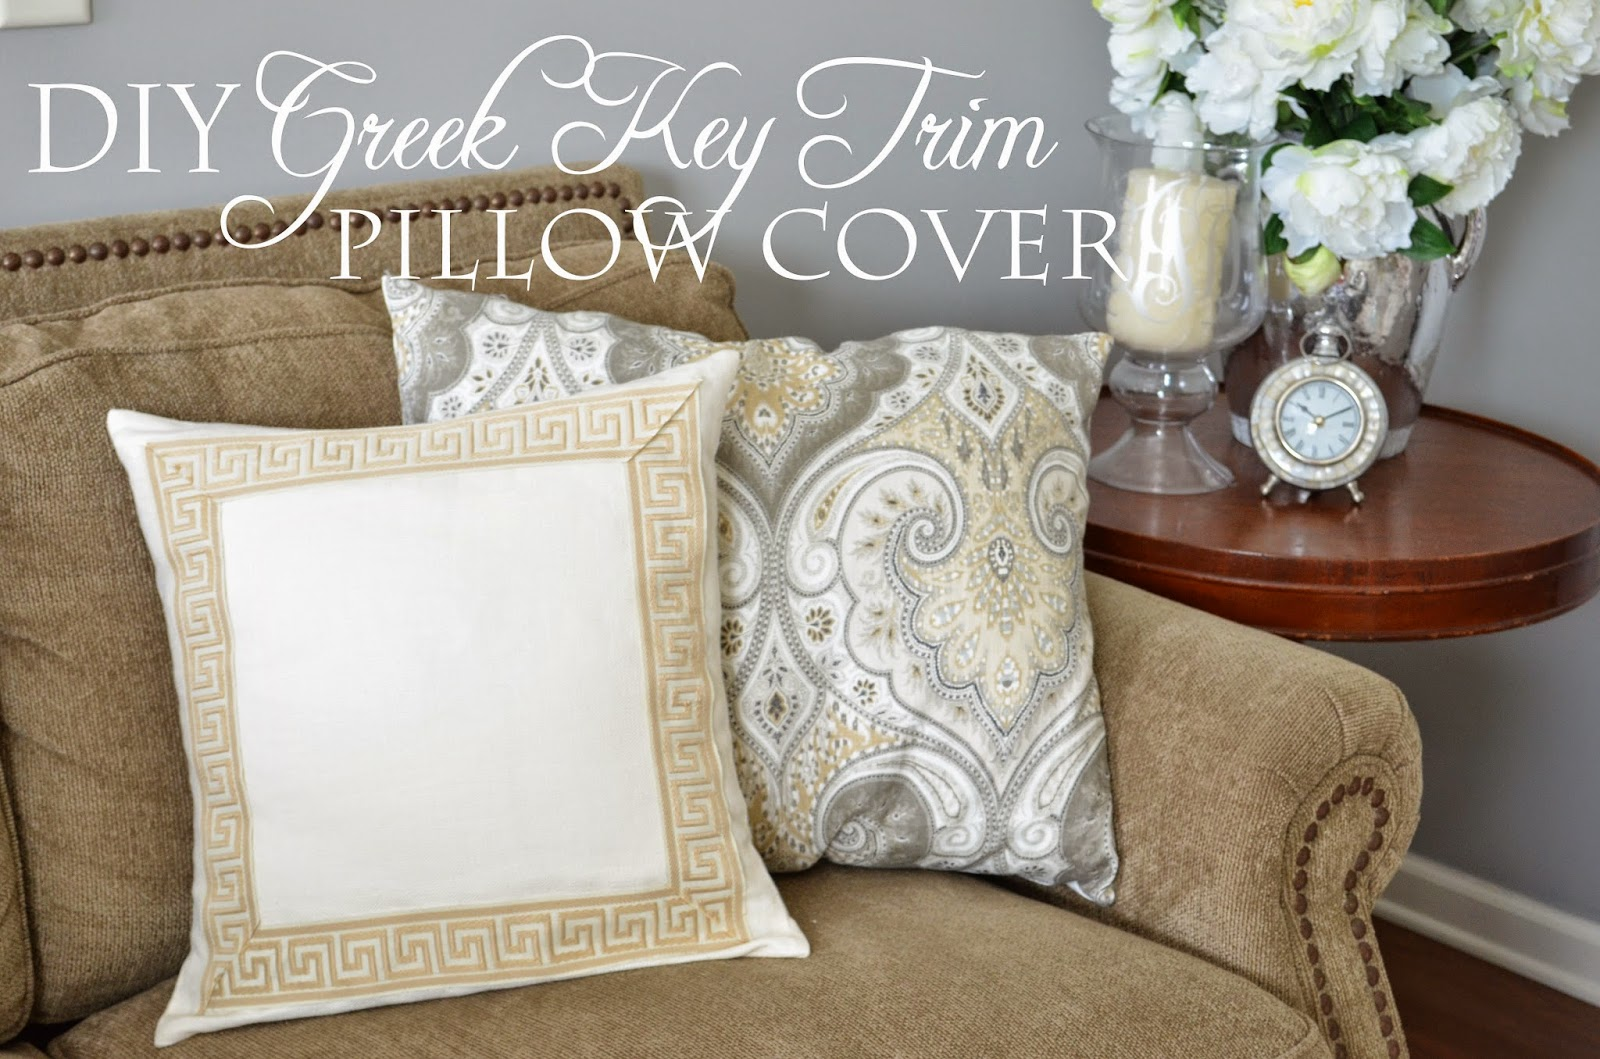 The Cheerful Home: DIY (no sew!) Greek Key Trim Pillow Covers